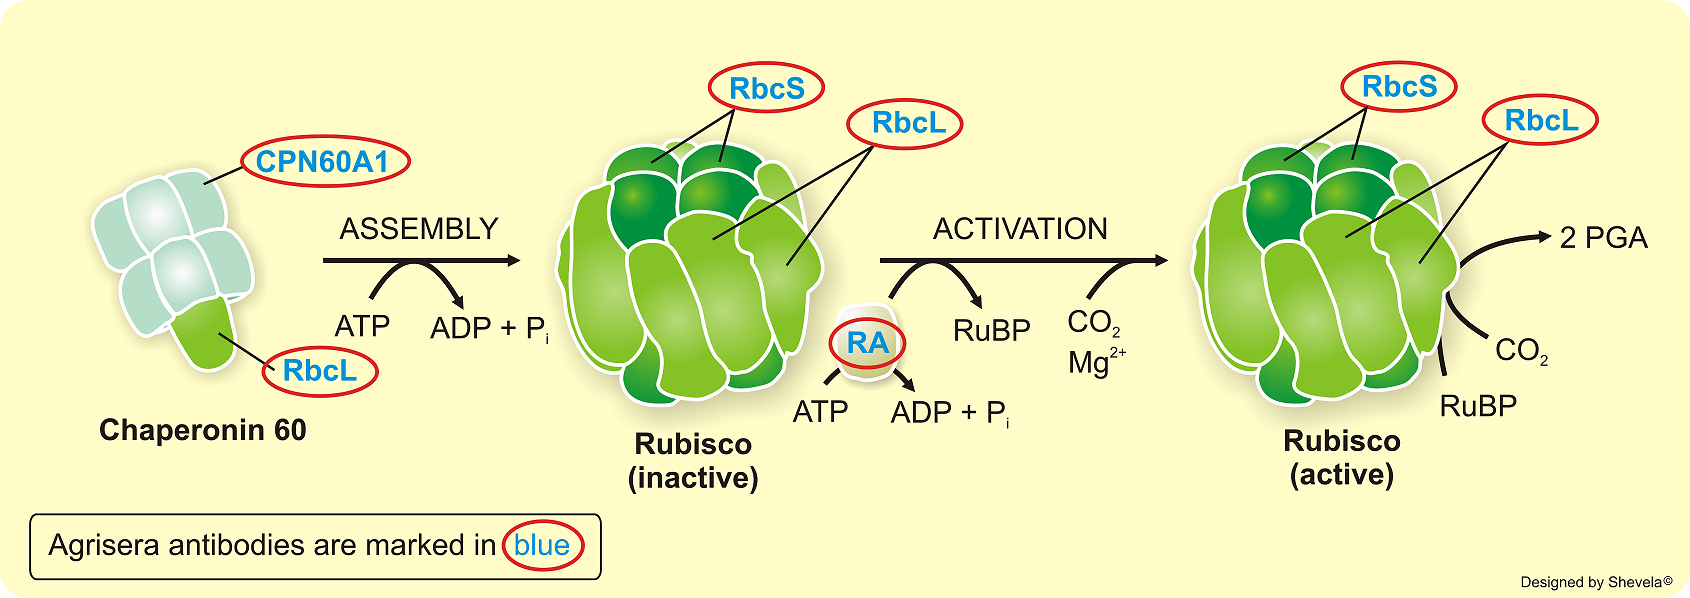 Scheme of Rubisco activation and corresponding antibodies